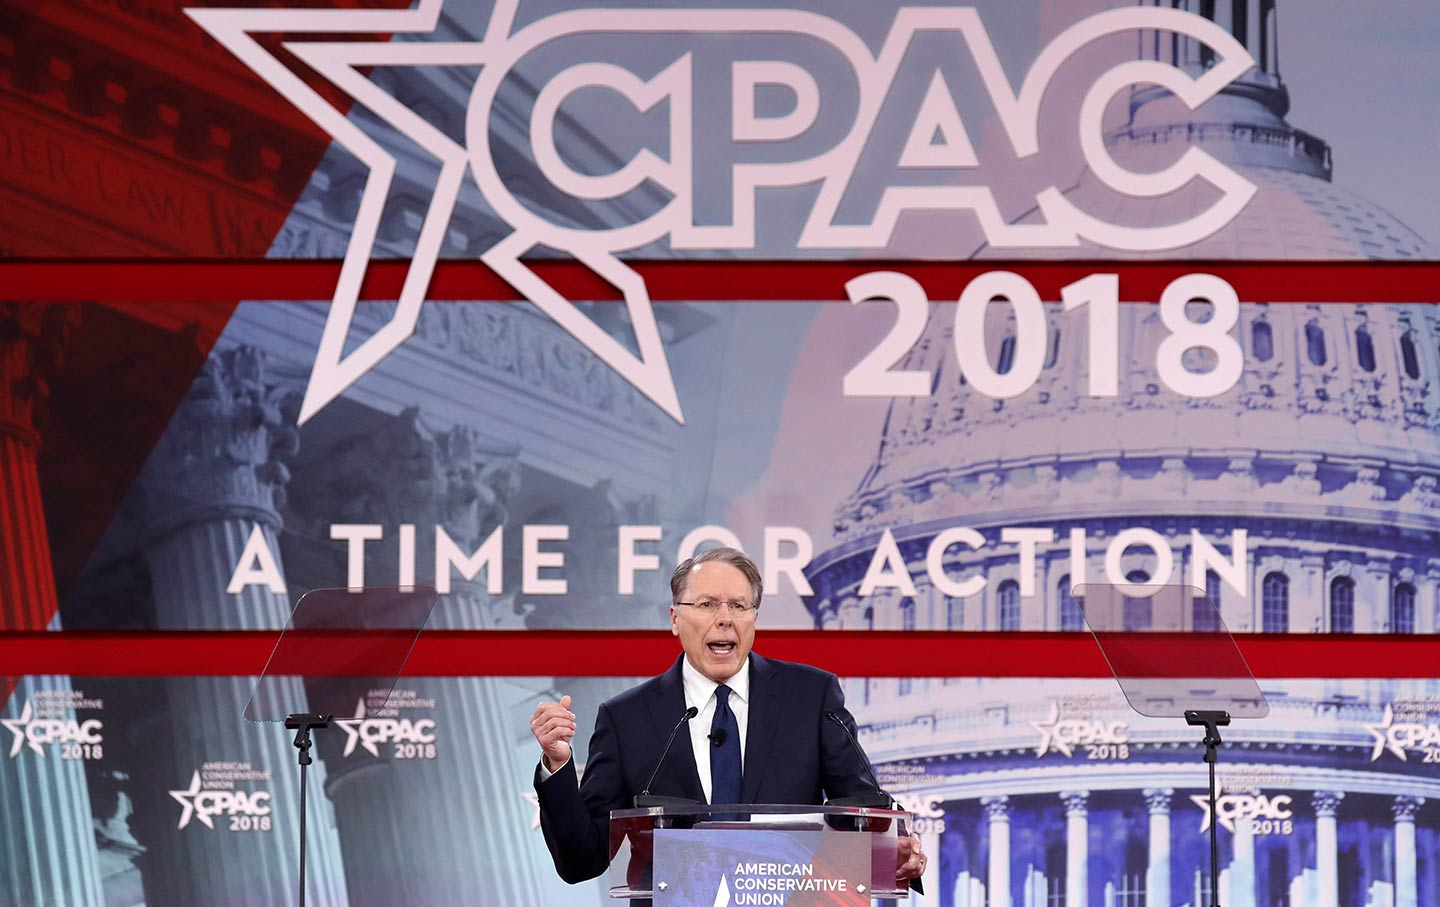 NRA head Wayne LaPierre speaks at CPAC 2018